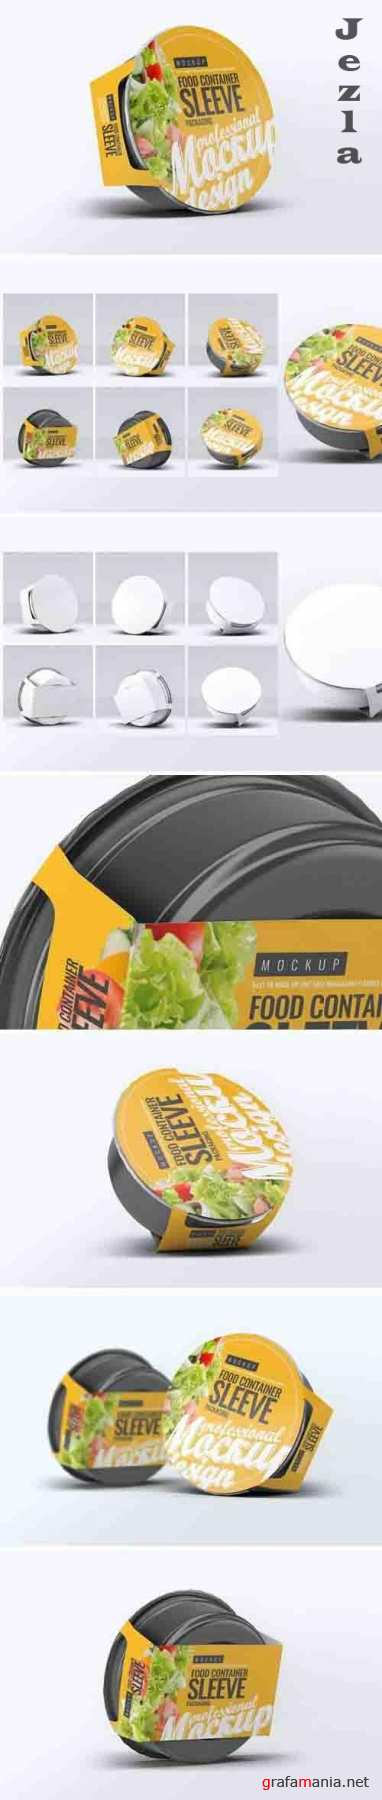 Food Container Sleeve Packaging Mock-Up v.1